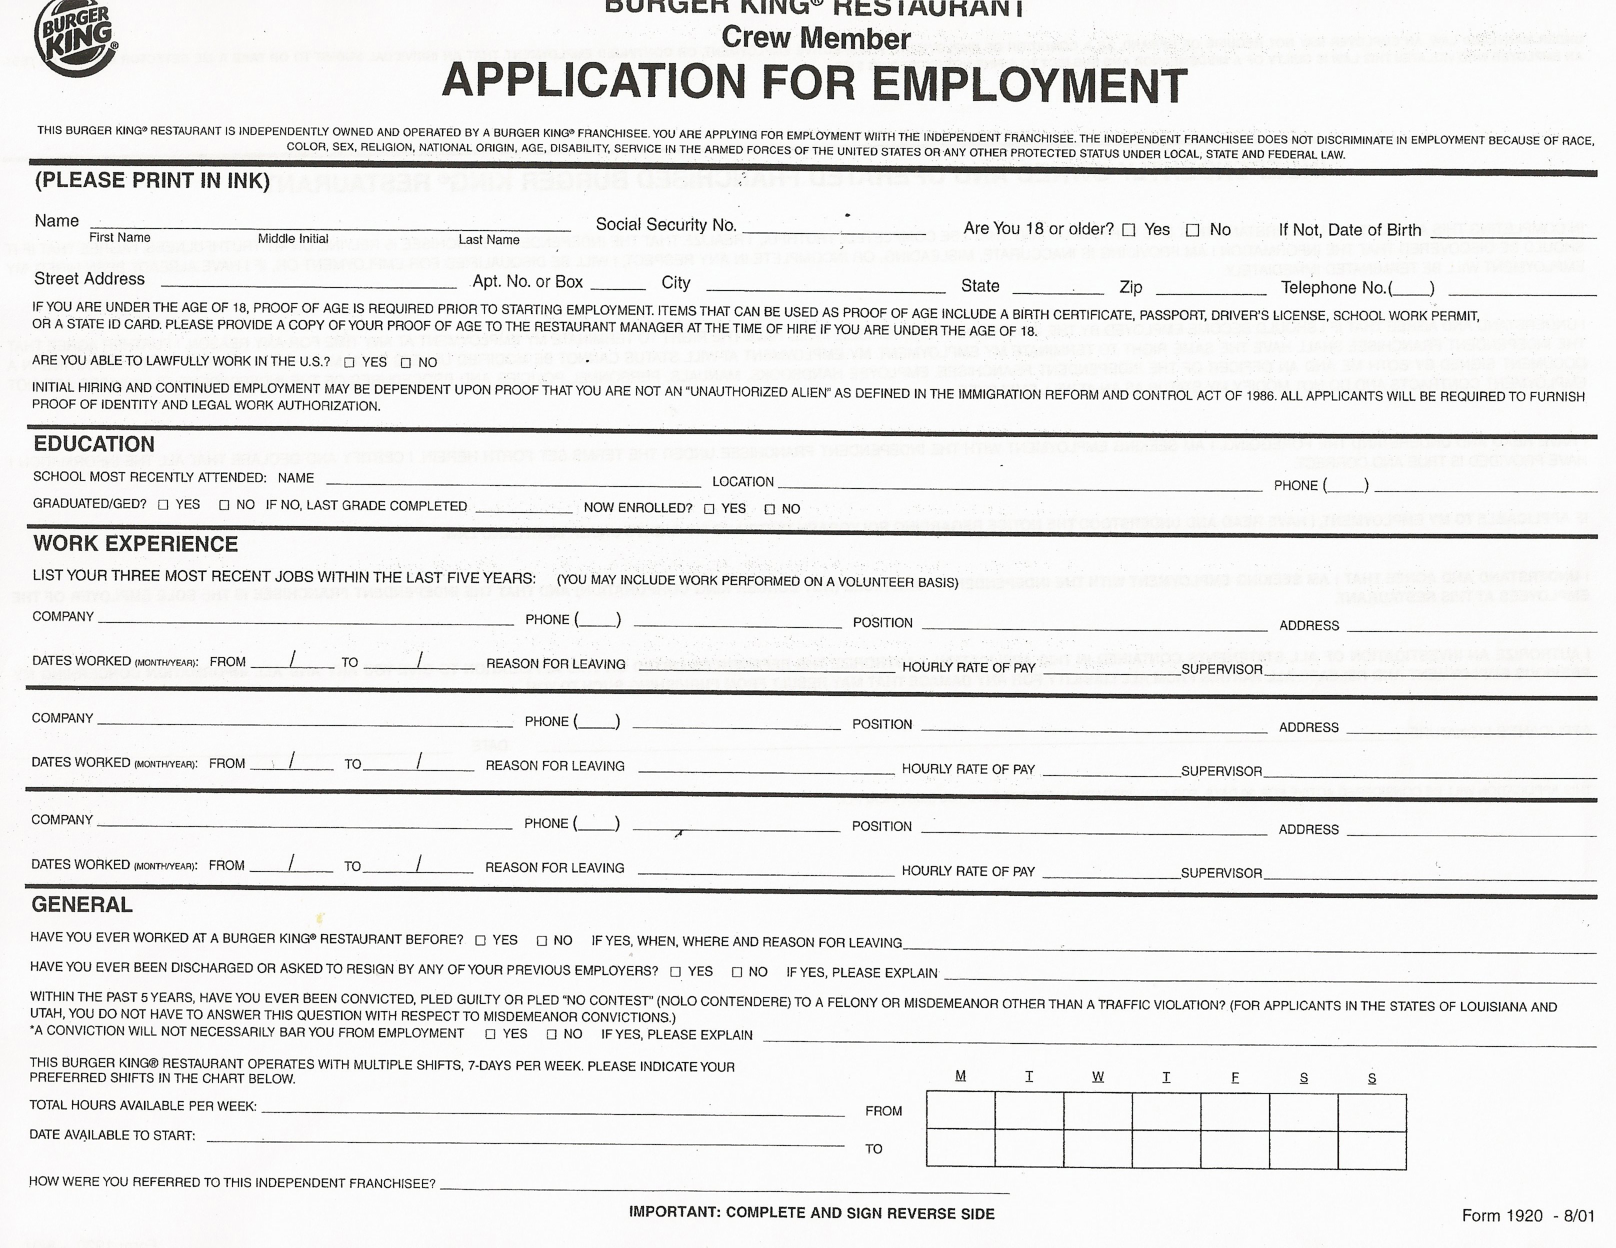 standard job application form standard application for employment application forms to print job application printable job applications printable job application